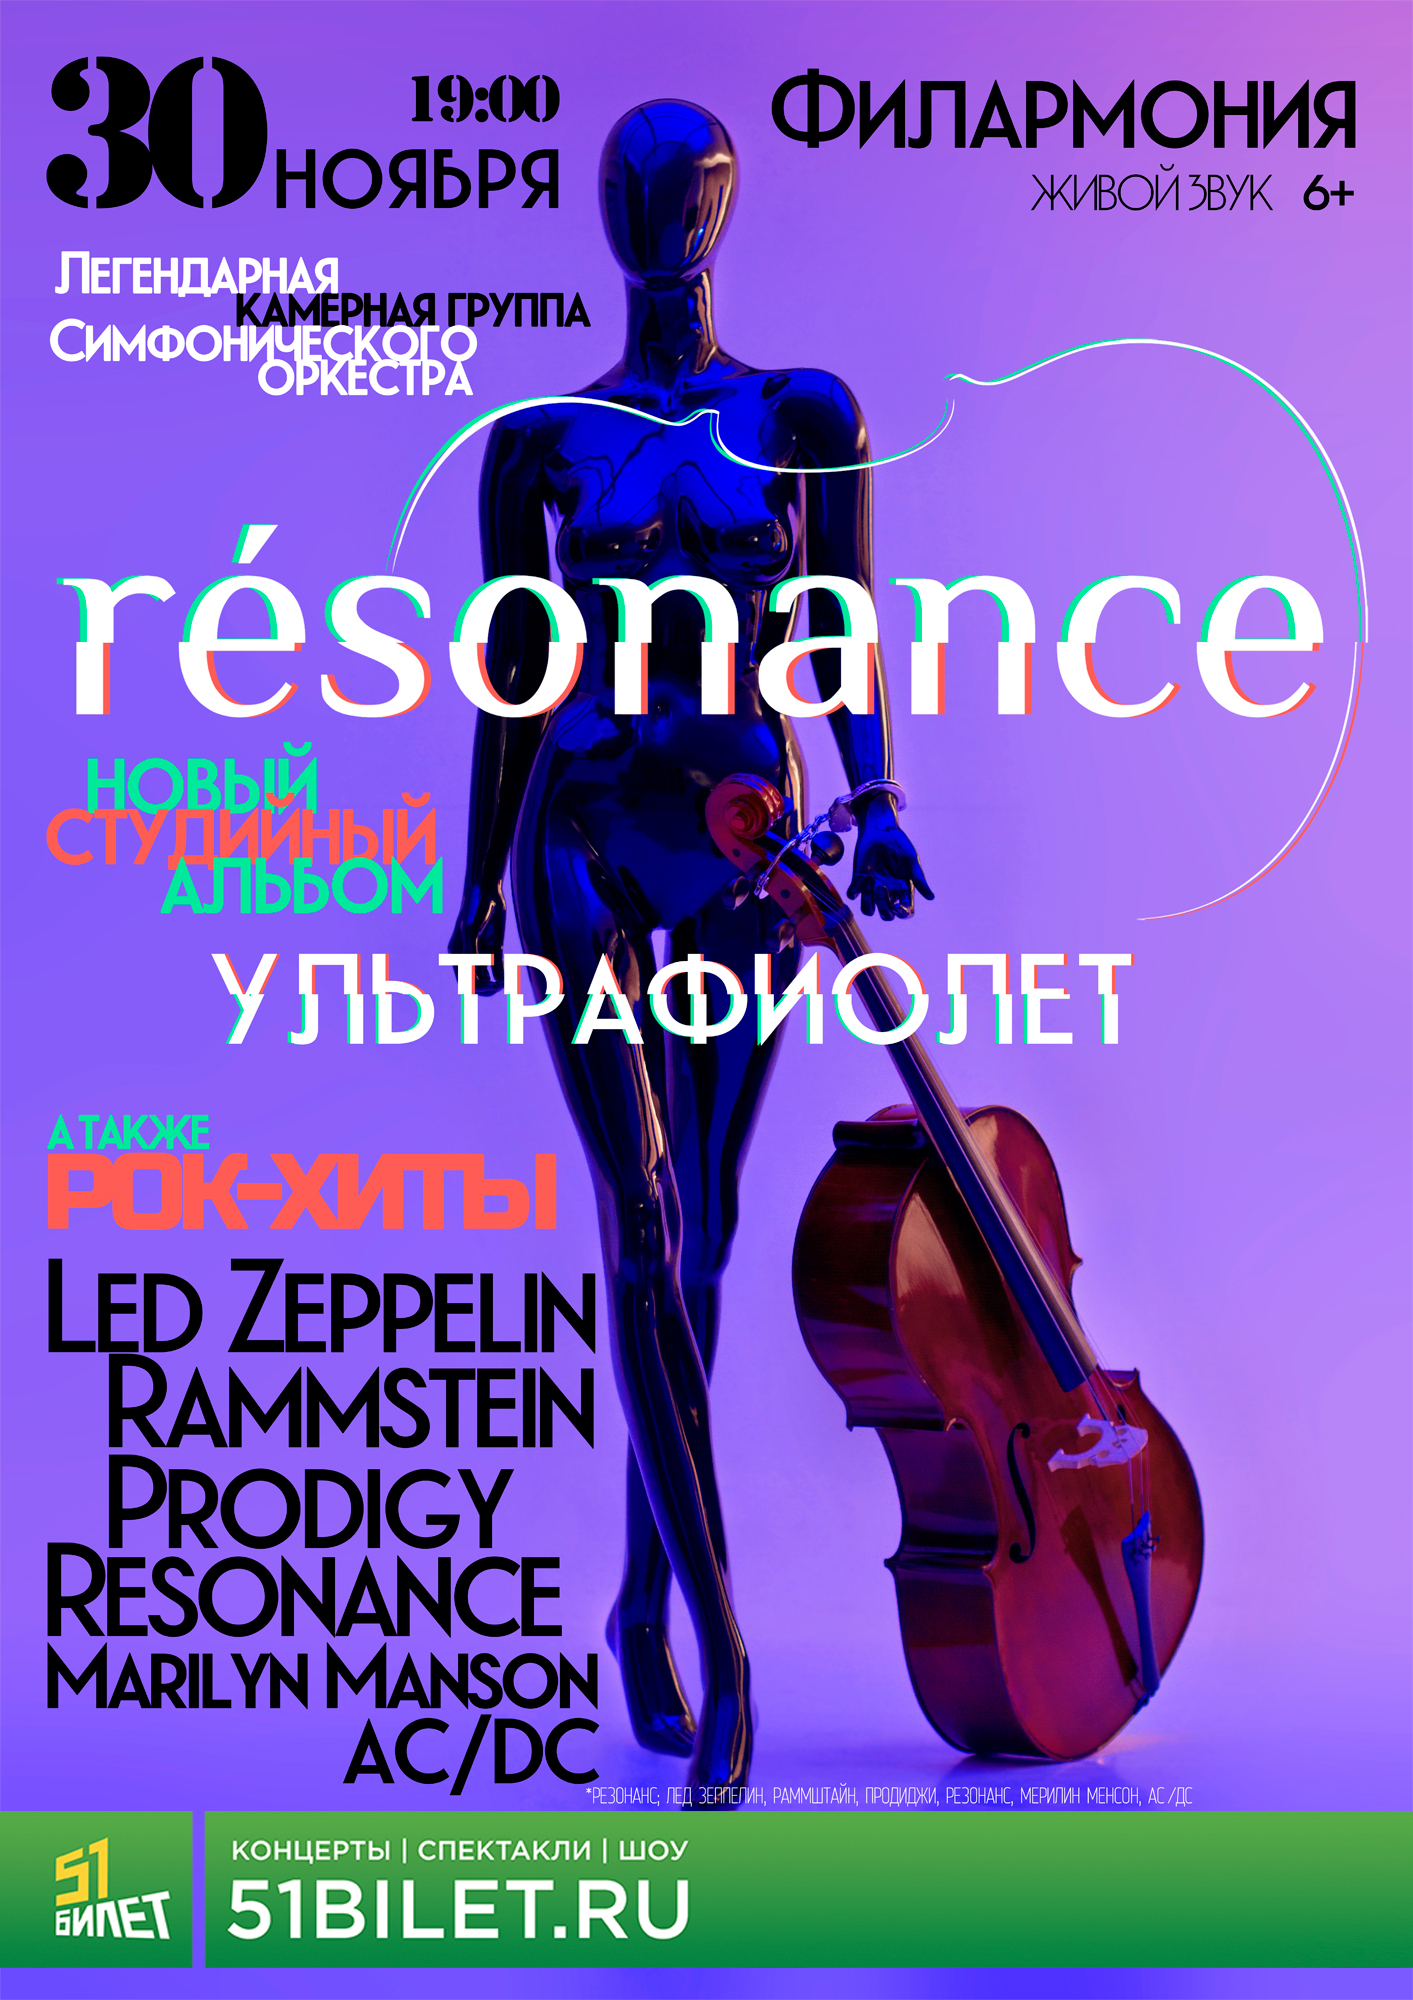 RESONANCE: ультрафиолет